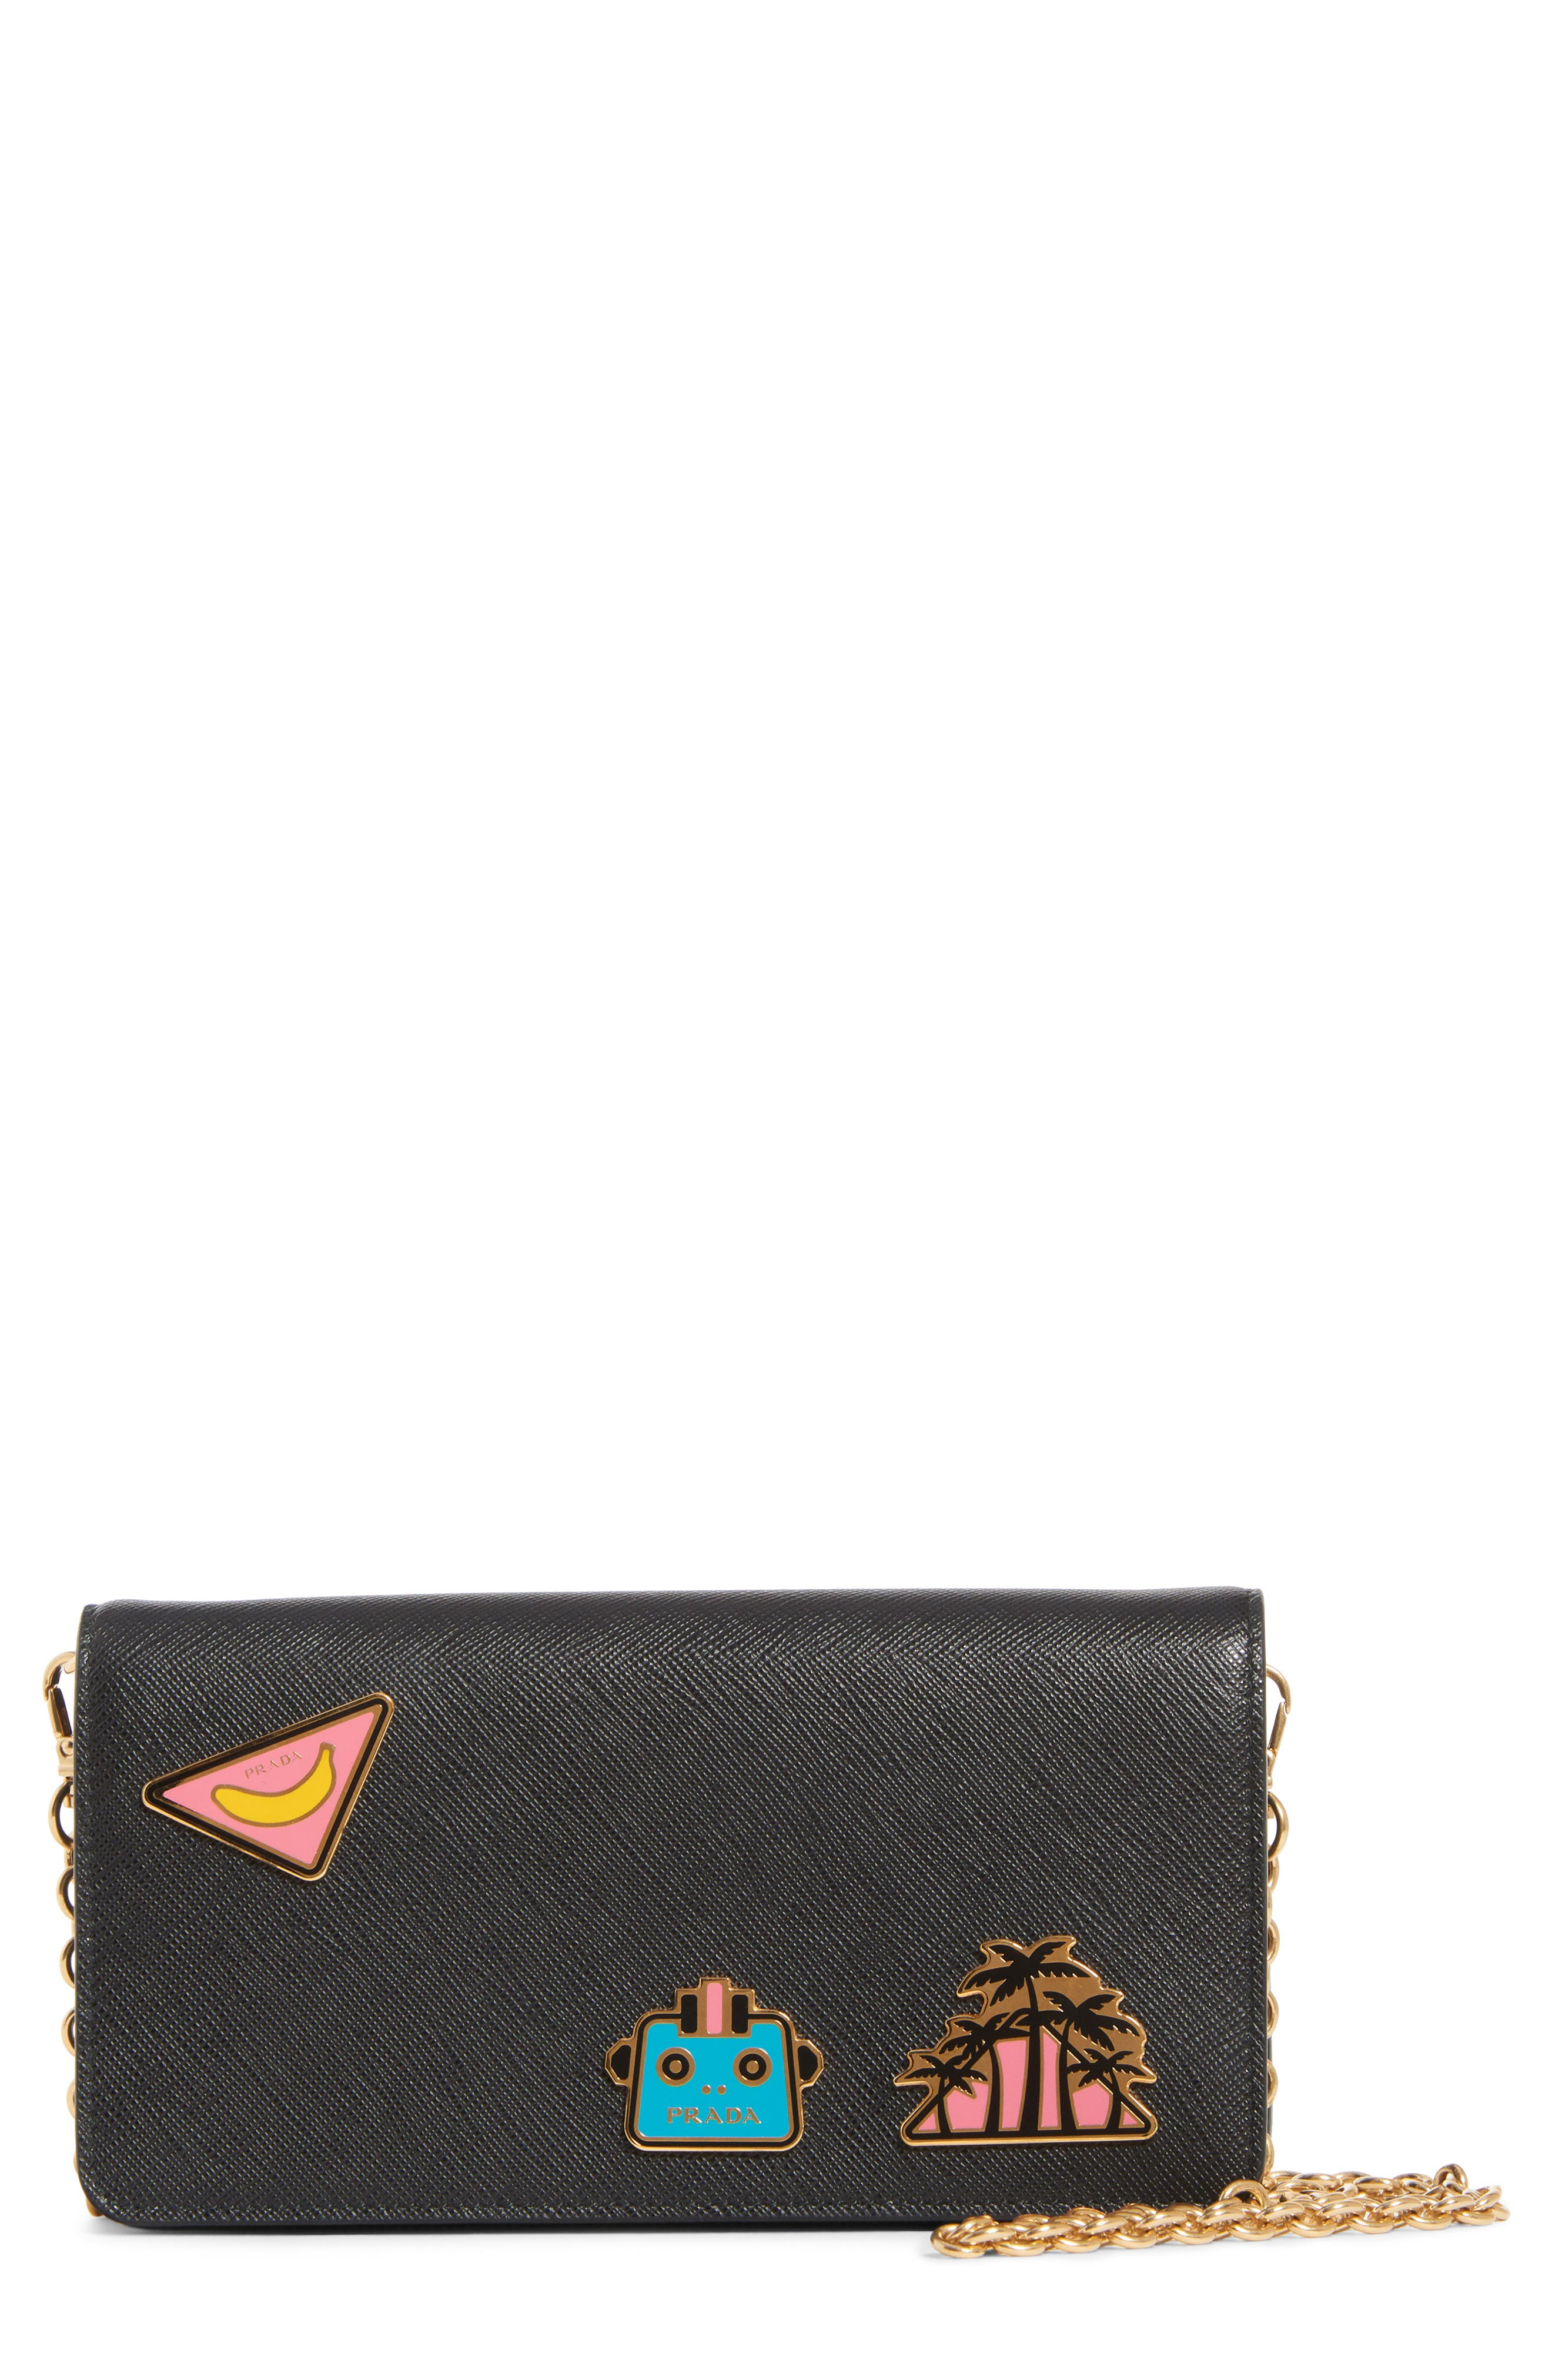 Embellished Saffiano Leather Wallet on a Chain,                             Main thumbnail 1, color,                             NERO/ FUOCO